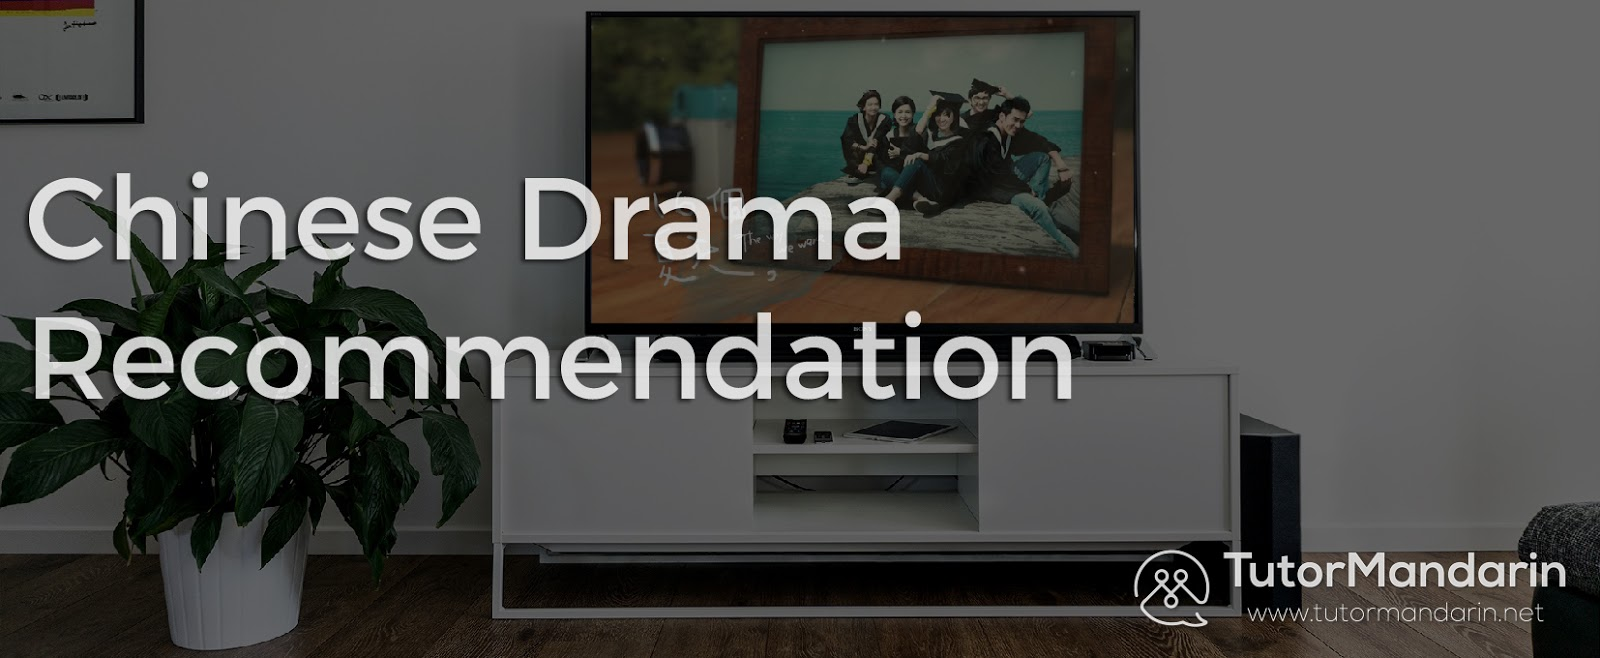 Chinese drama recommendations